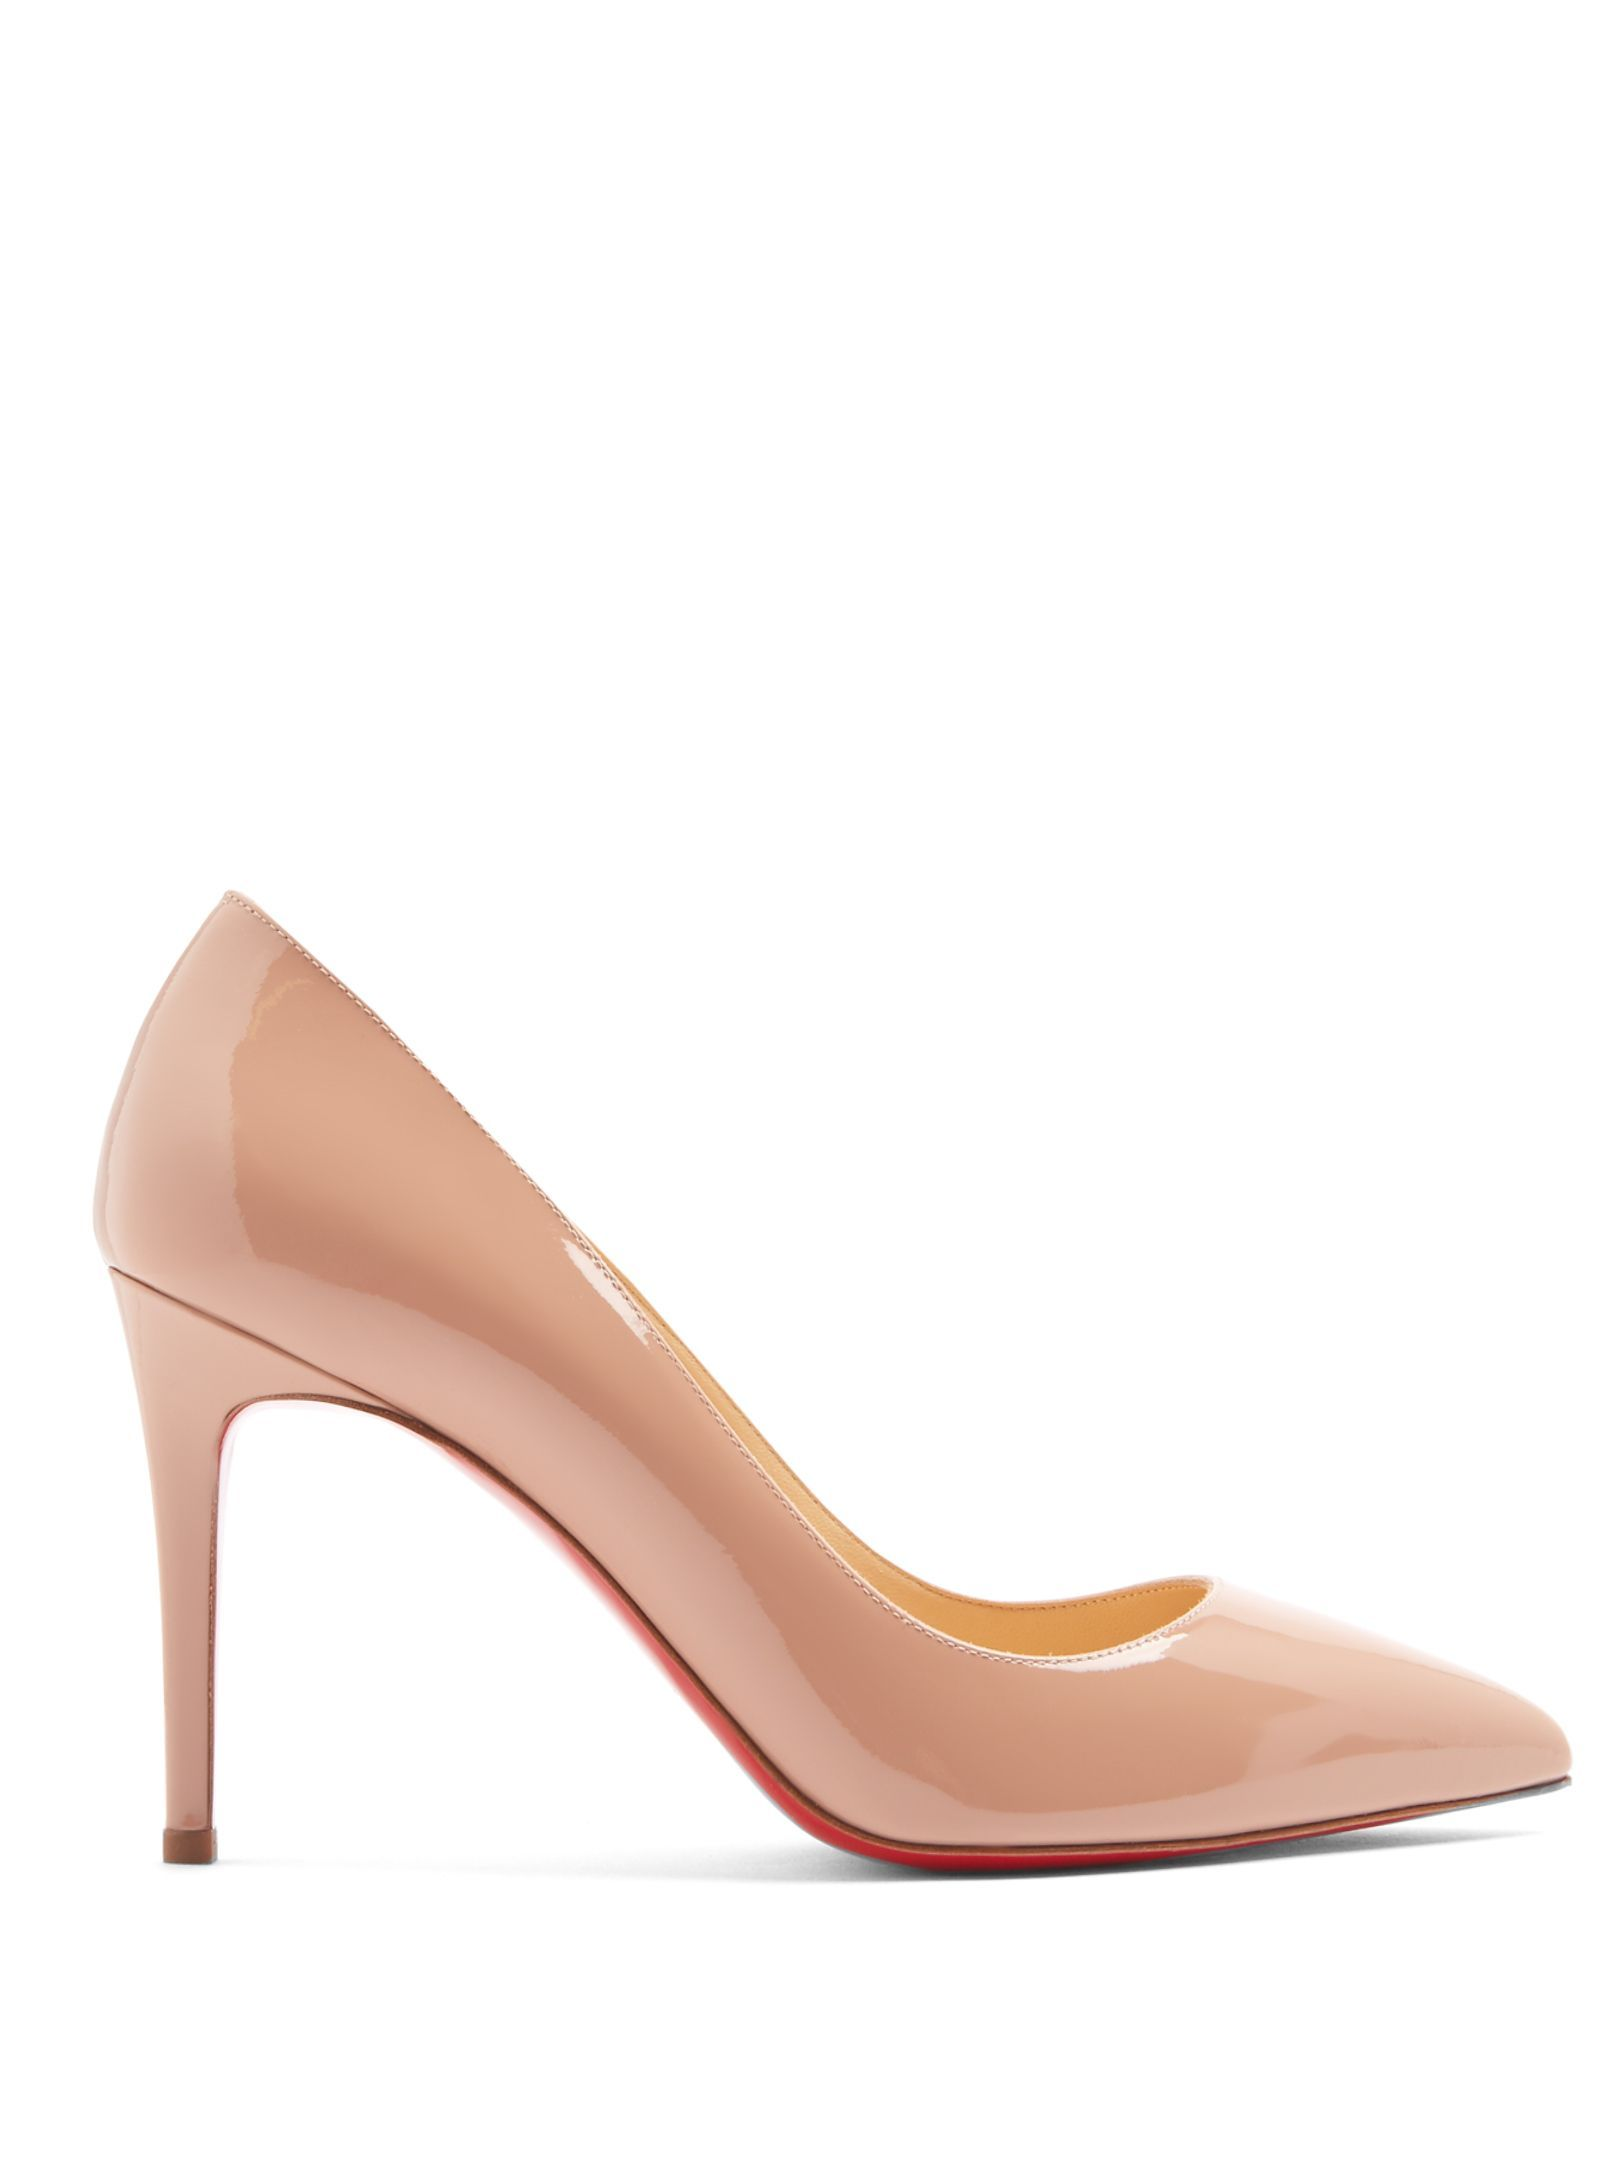 7376d51213c Click here to buy Christian Louboutin Pigalle 85mm patent-leather ...